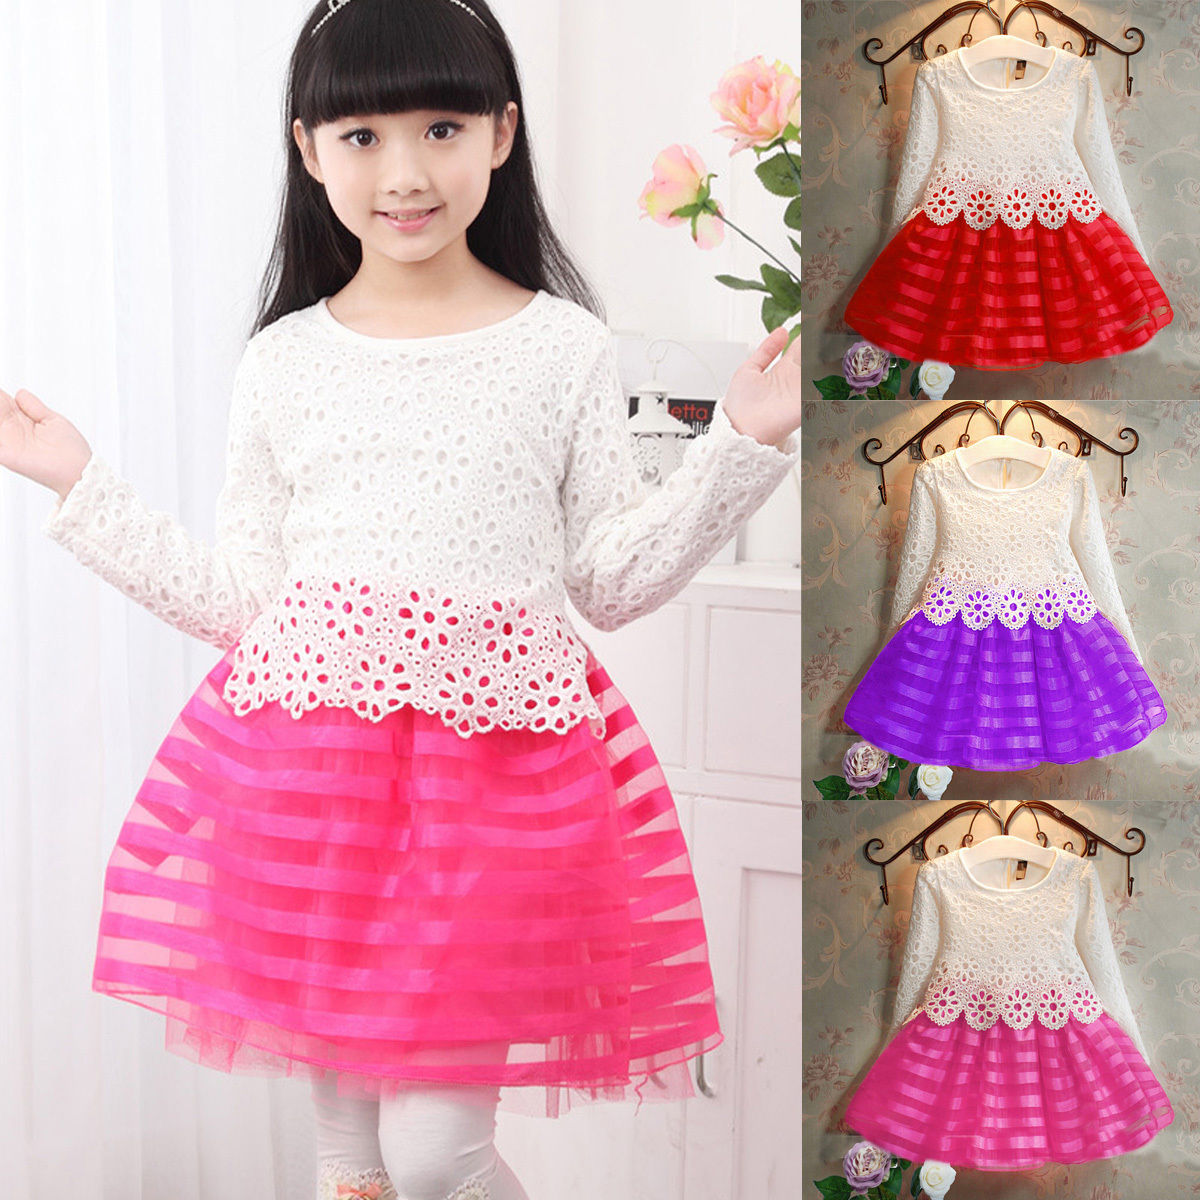 Beautiful crochet dresses for kids trendy - Spring Baby Kids Girls Dress Children Crochet Lace Long Sleeve Striped Ball Gown Patchwork Autumn Dress